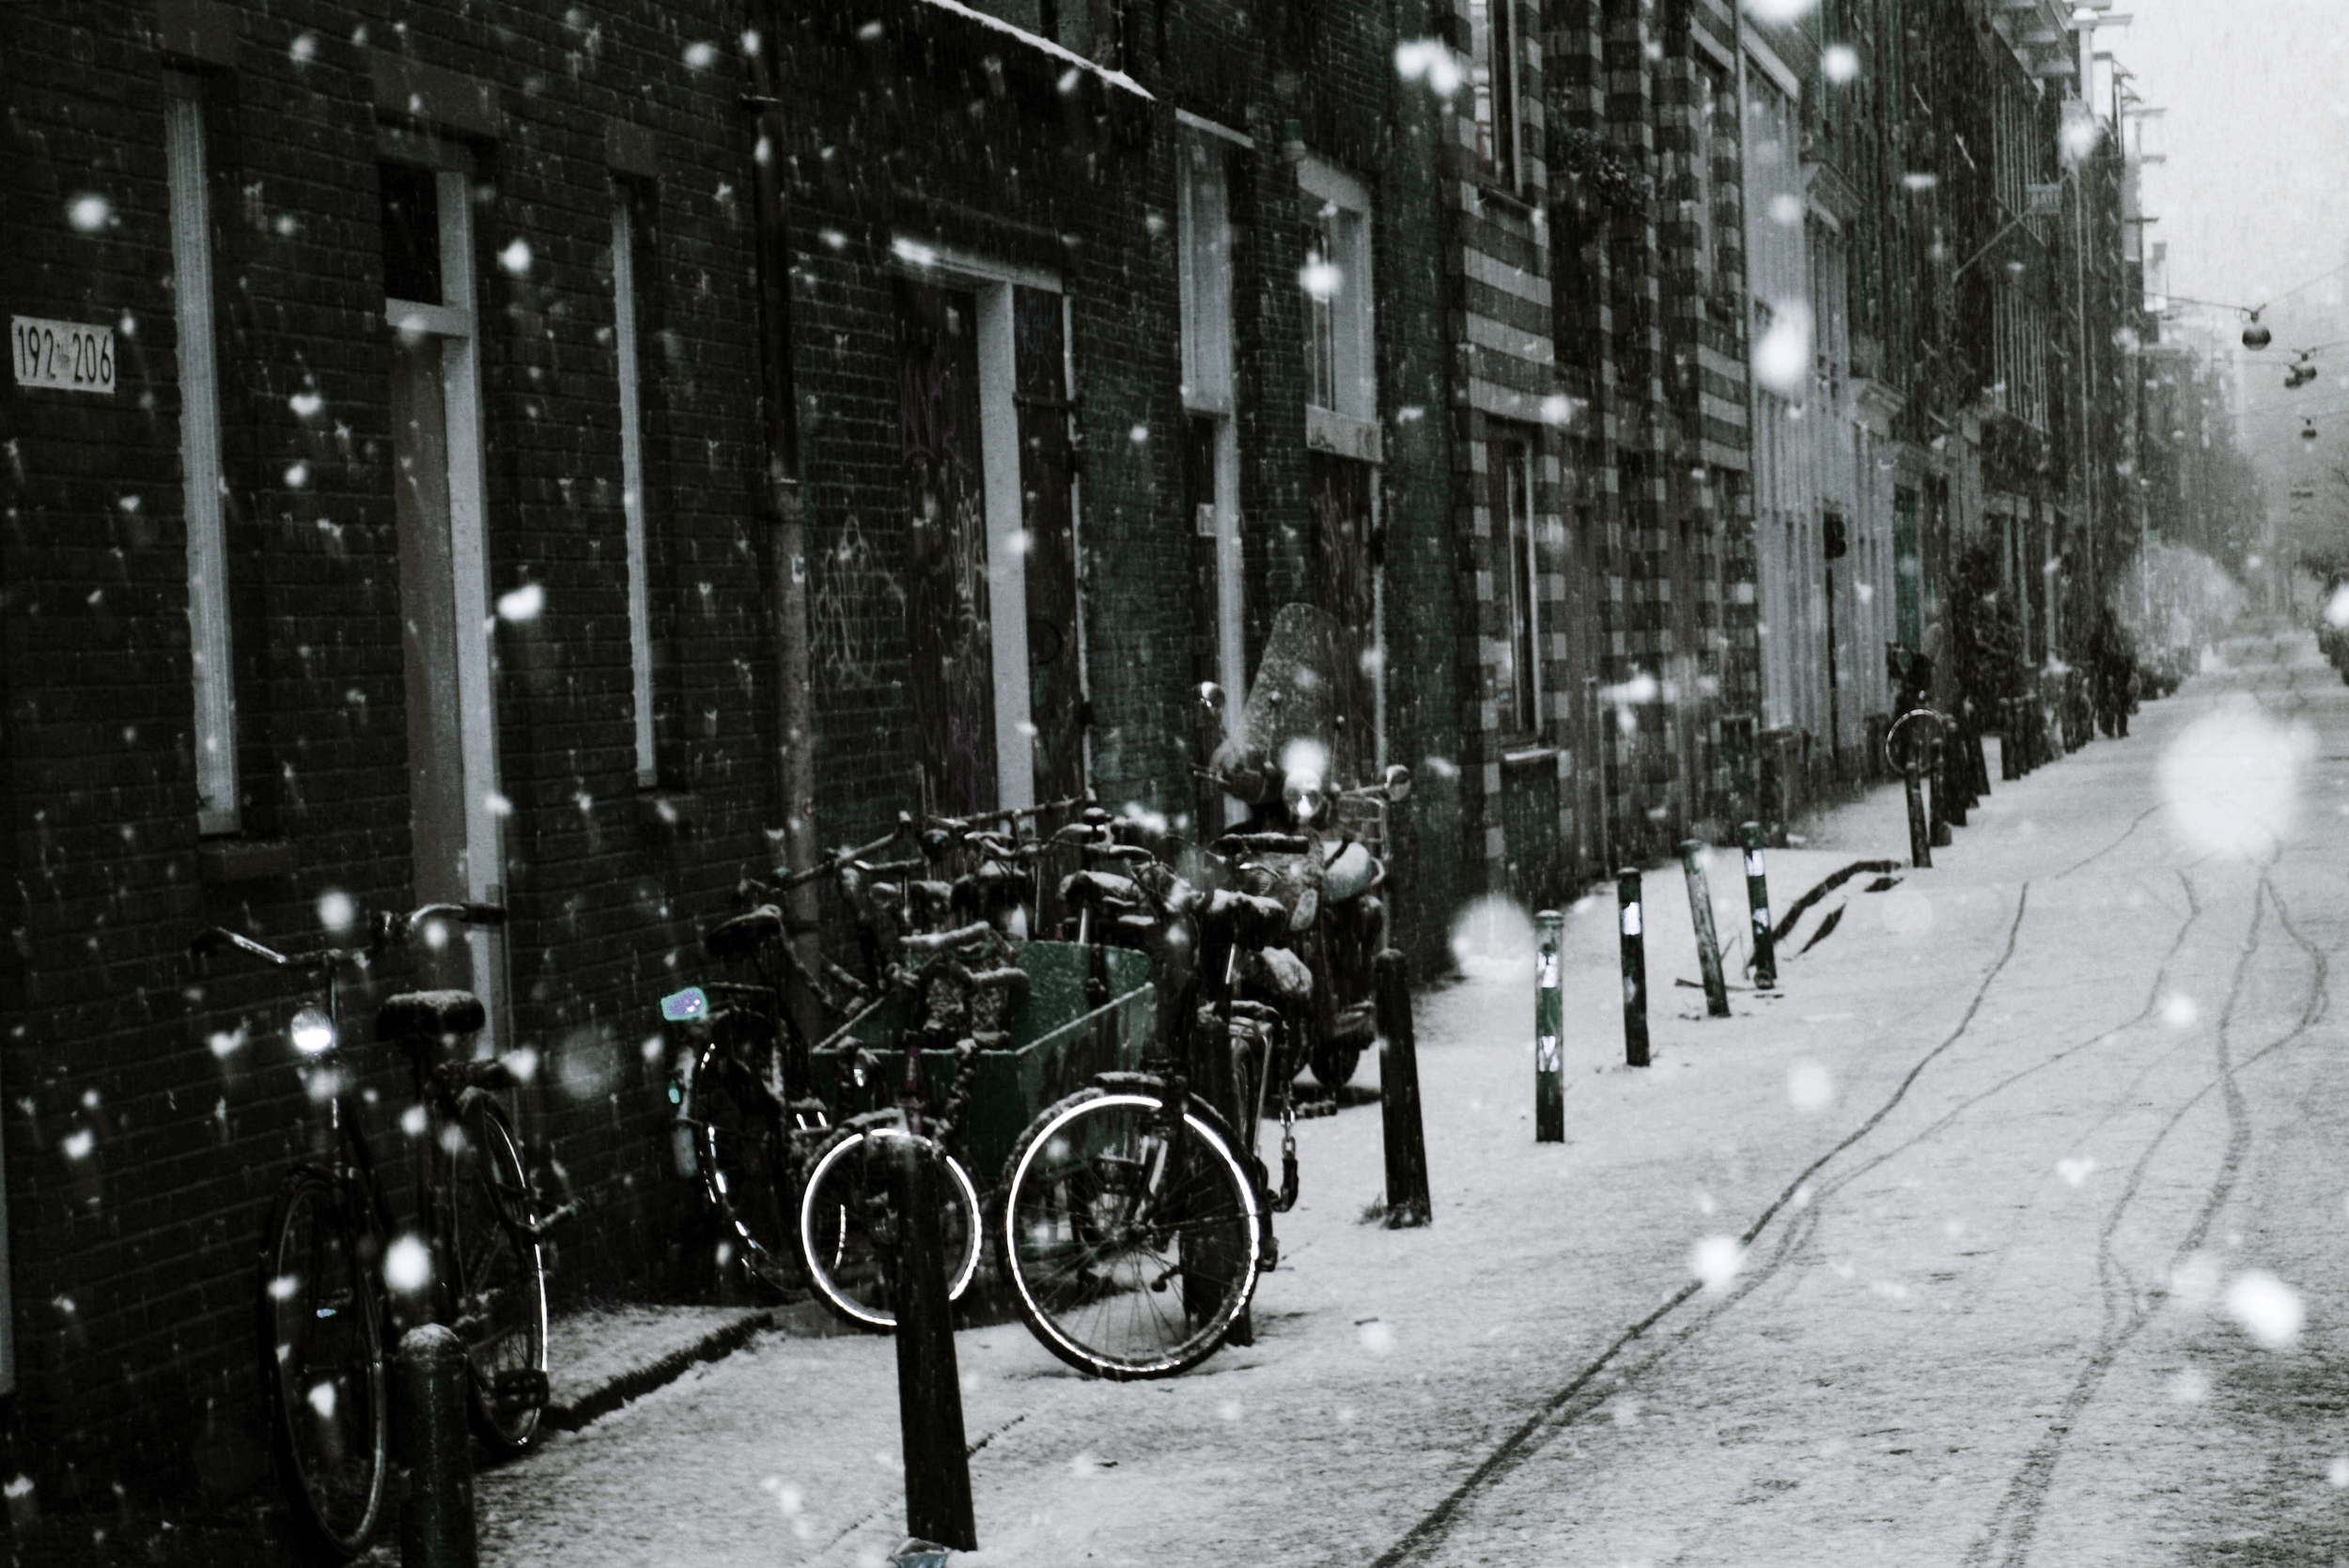 amsterdam snow edit1.jpg